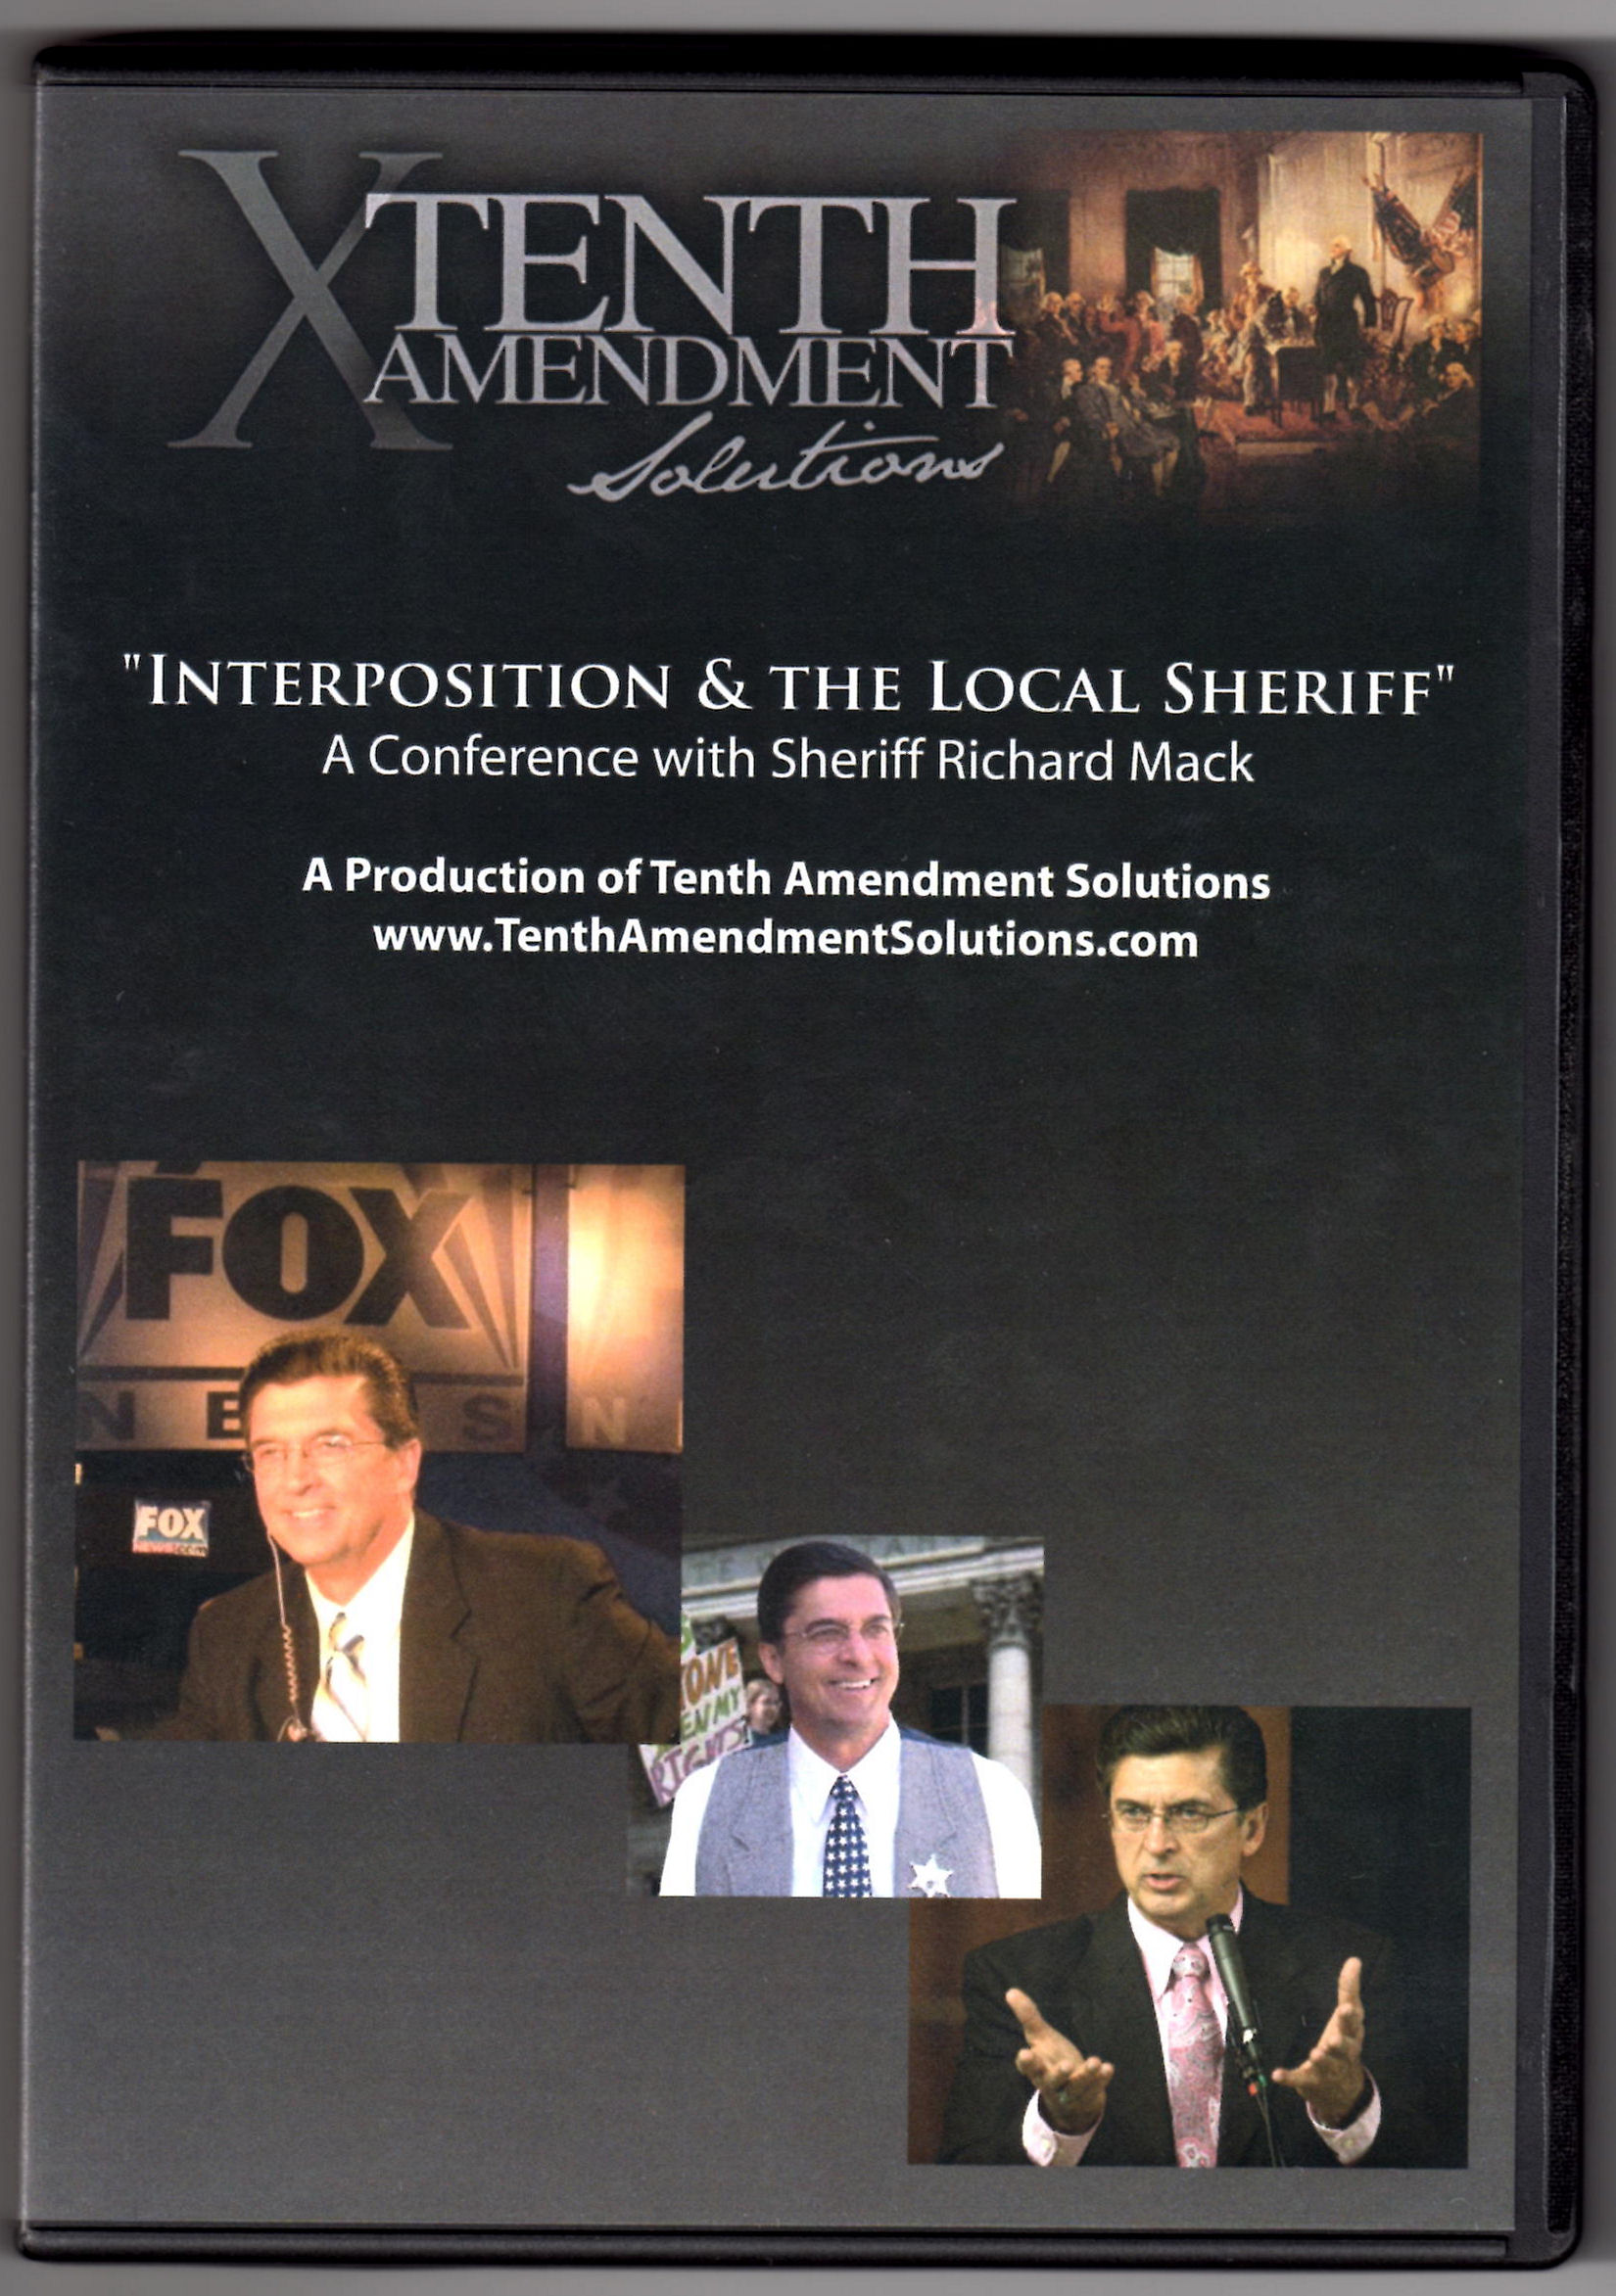 DVD Interposition & The Local Sheriff